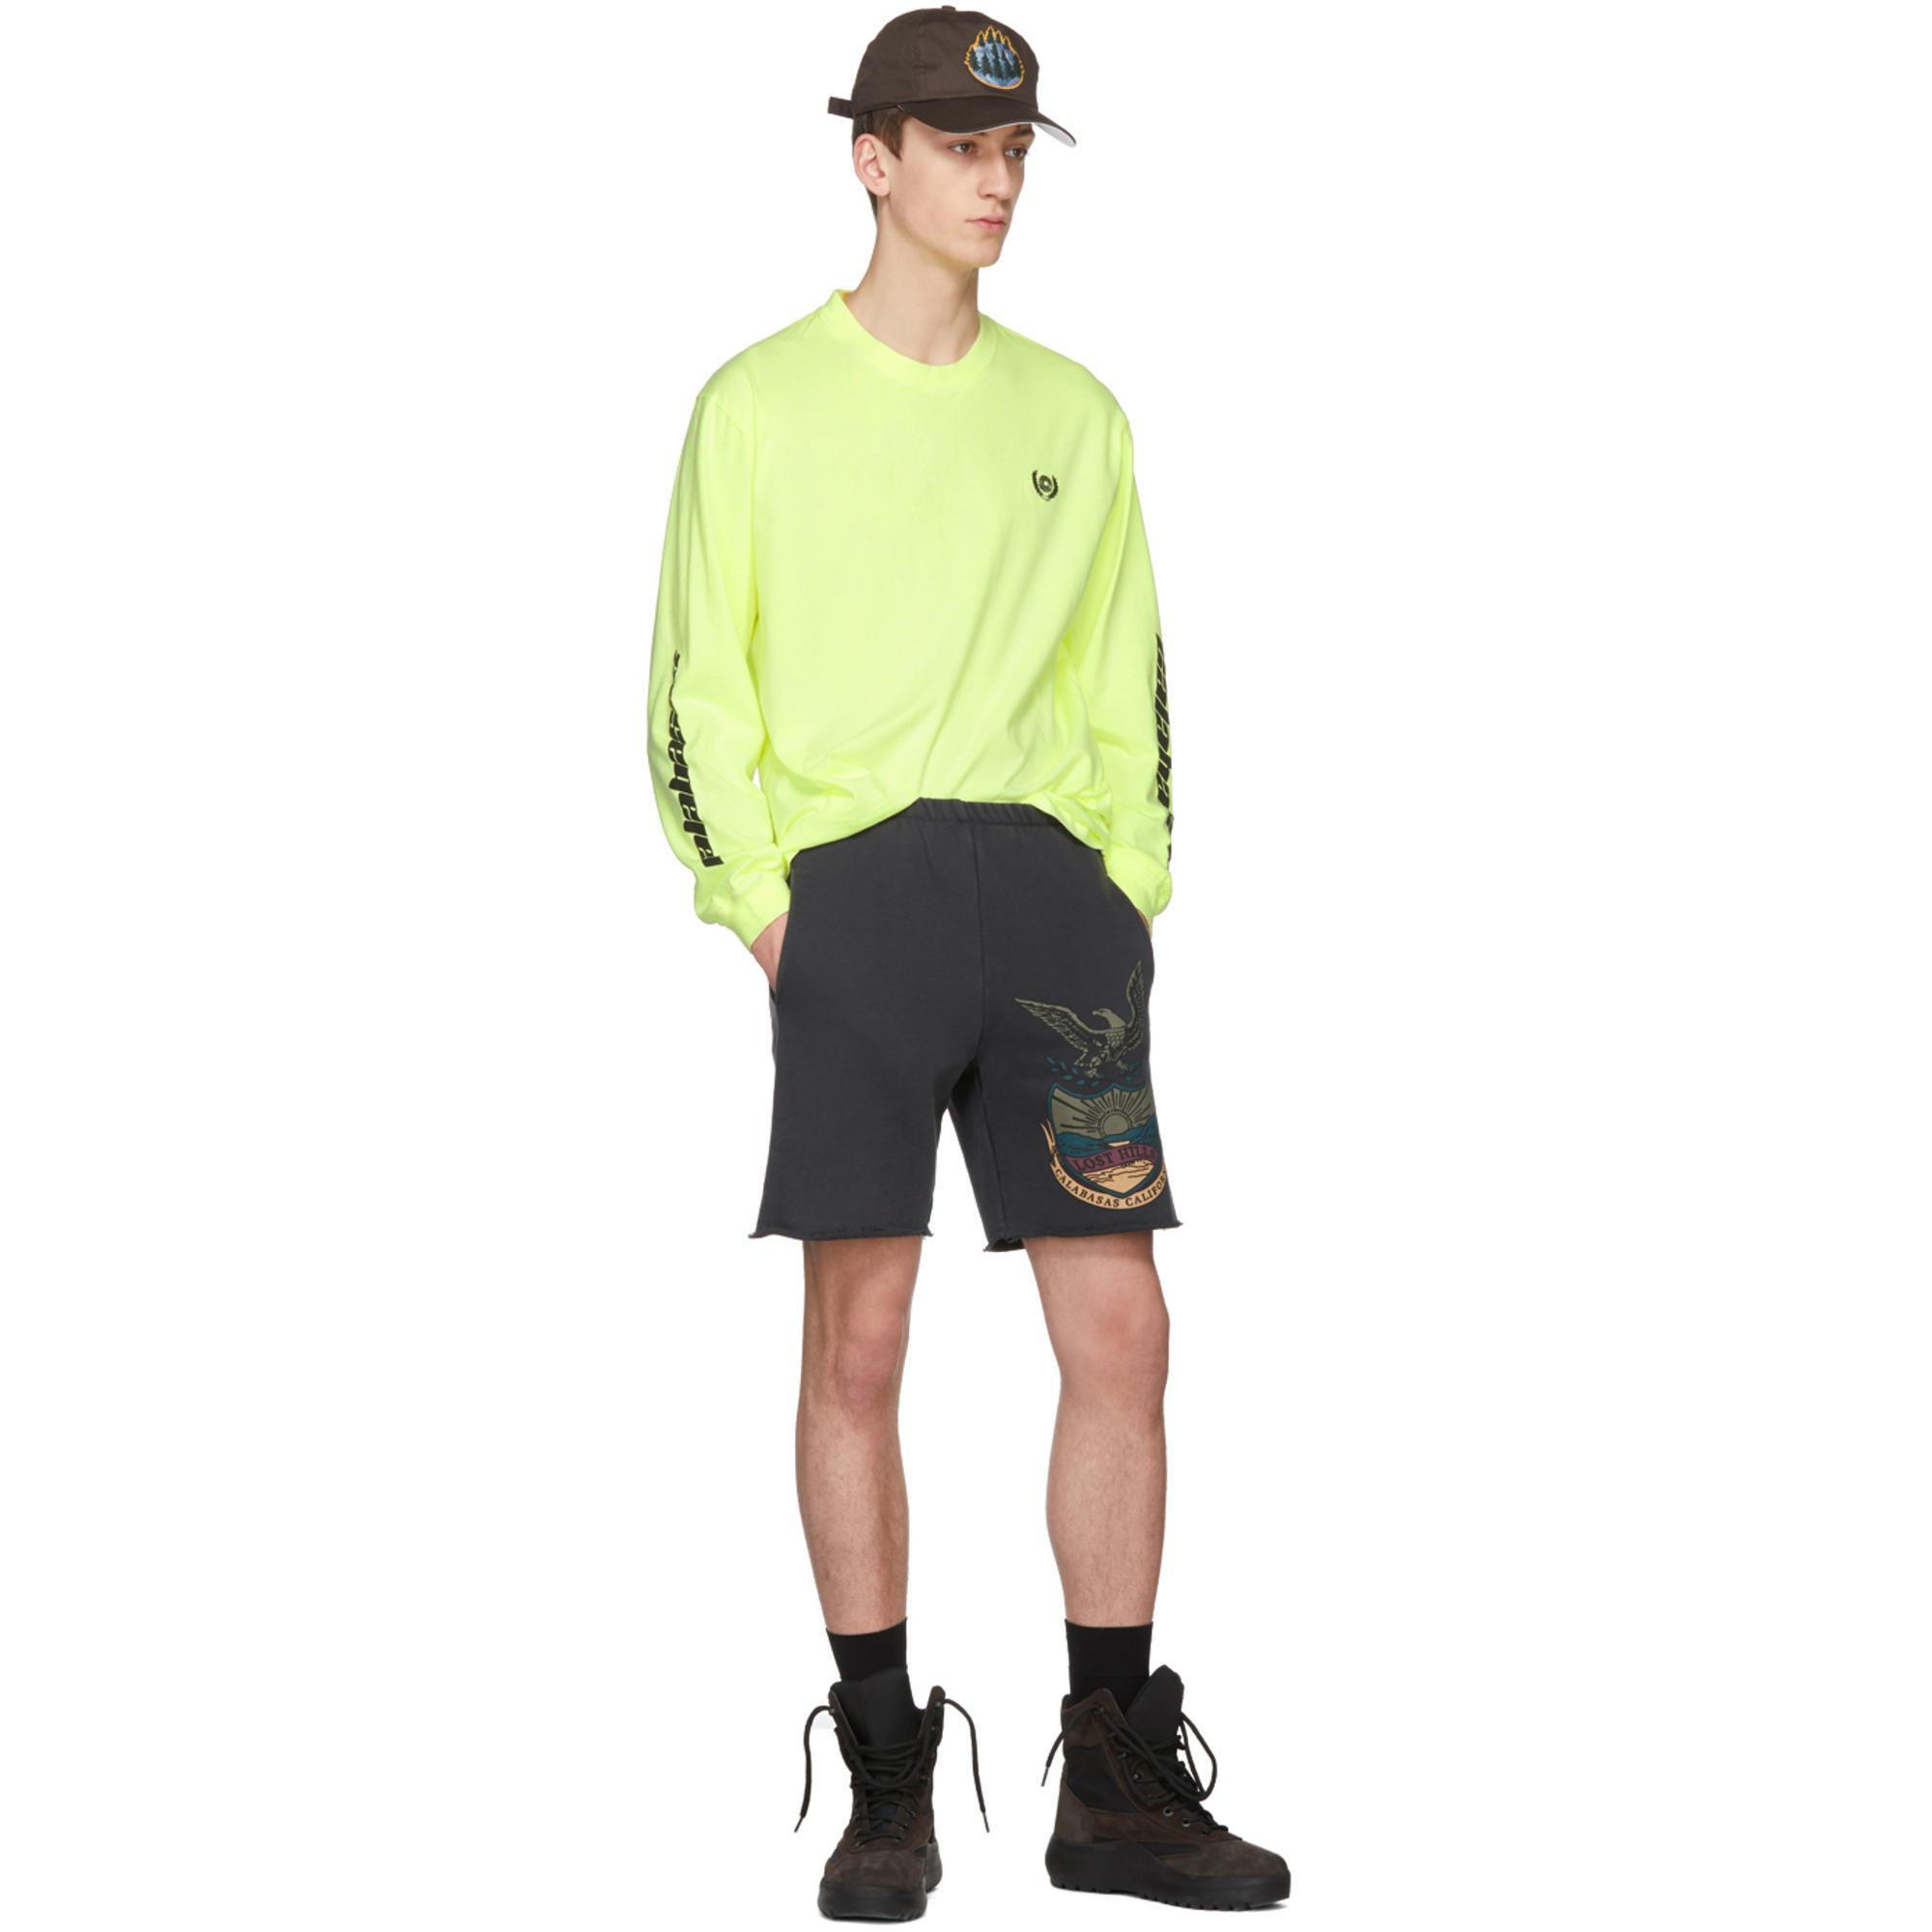 d27912a177f2c Lyst - Yeezy Yellow Long Sleeve Calabasas T-shirt in Yellow for Men